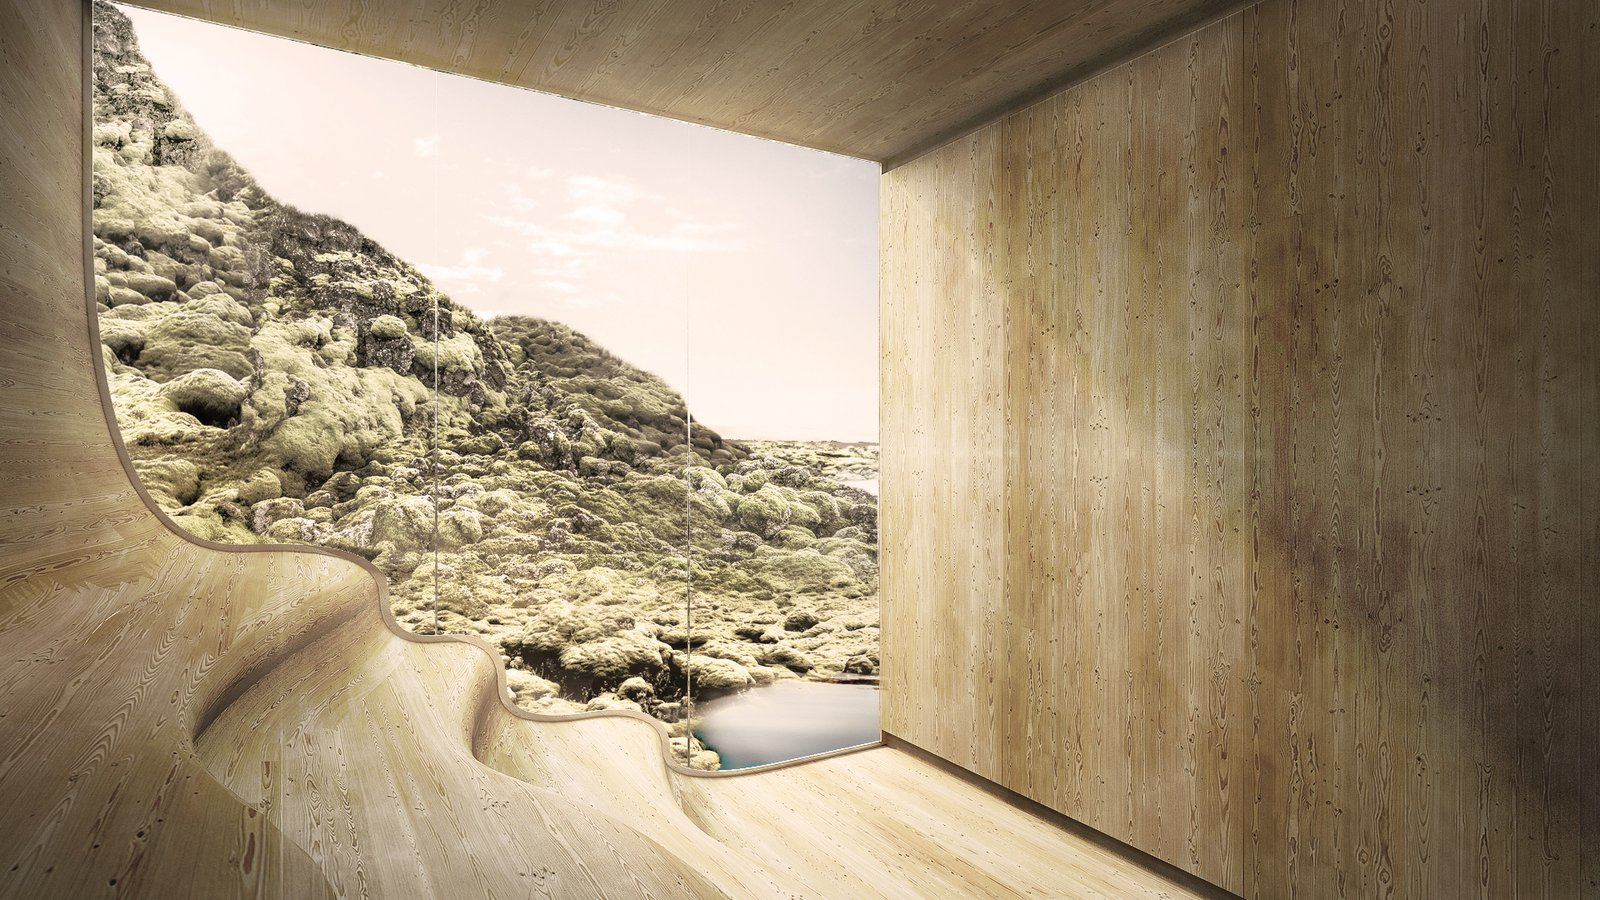 Bath Room sauna  Photo 7 of 18 in A Proposed Icelandic Resort Celebrates Wellness and its Magical Surroundings